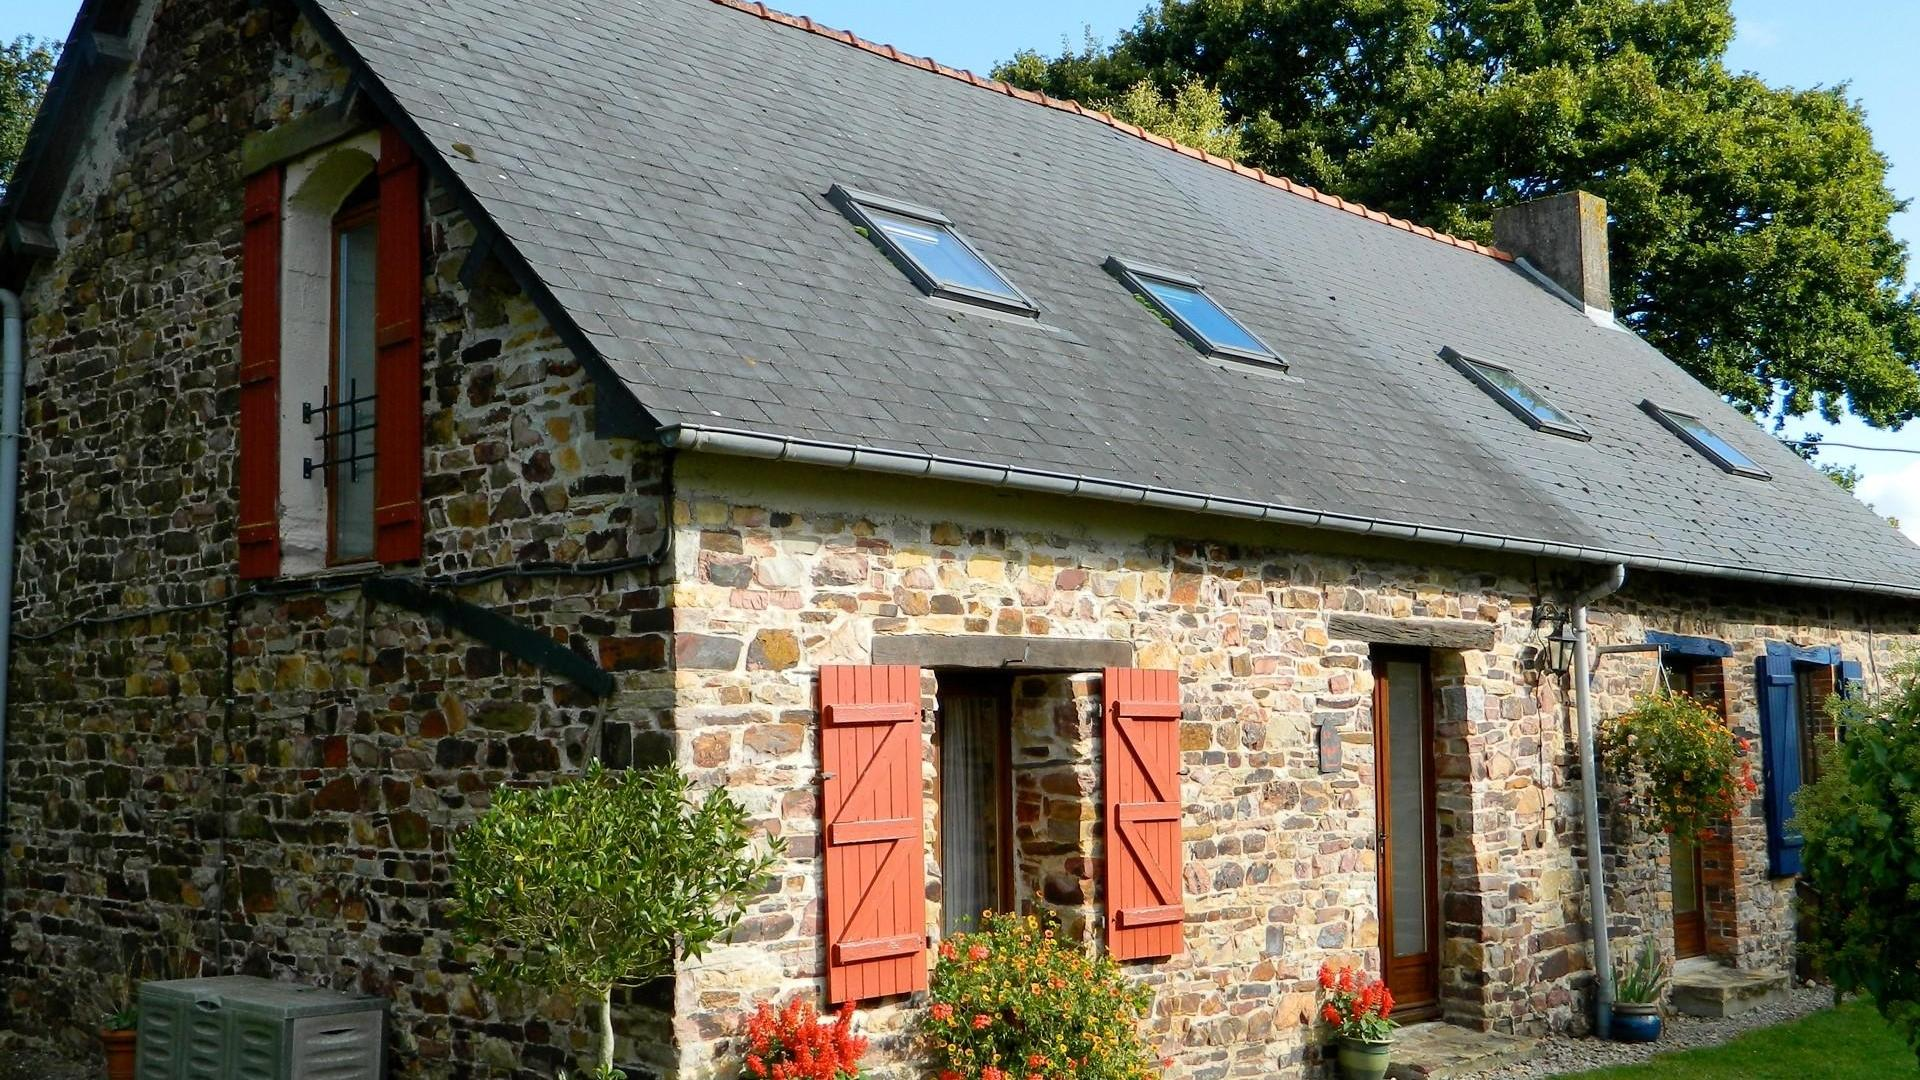 3 bed child-friendly holiday cottage in southern Brittany – SJLN